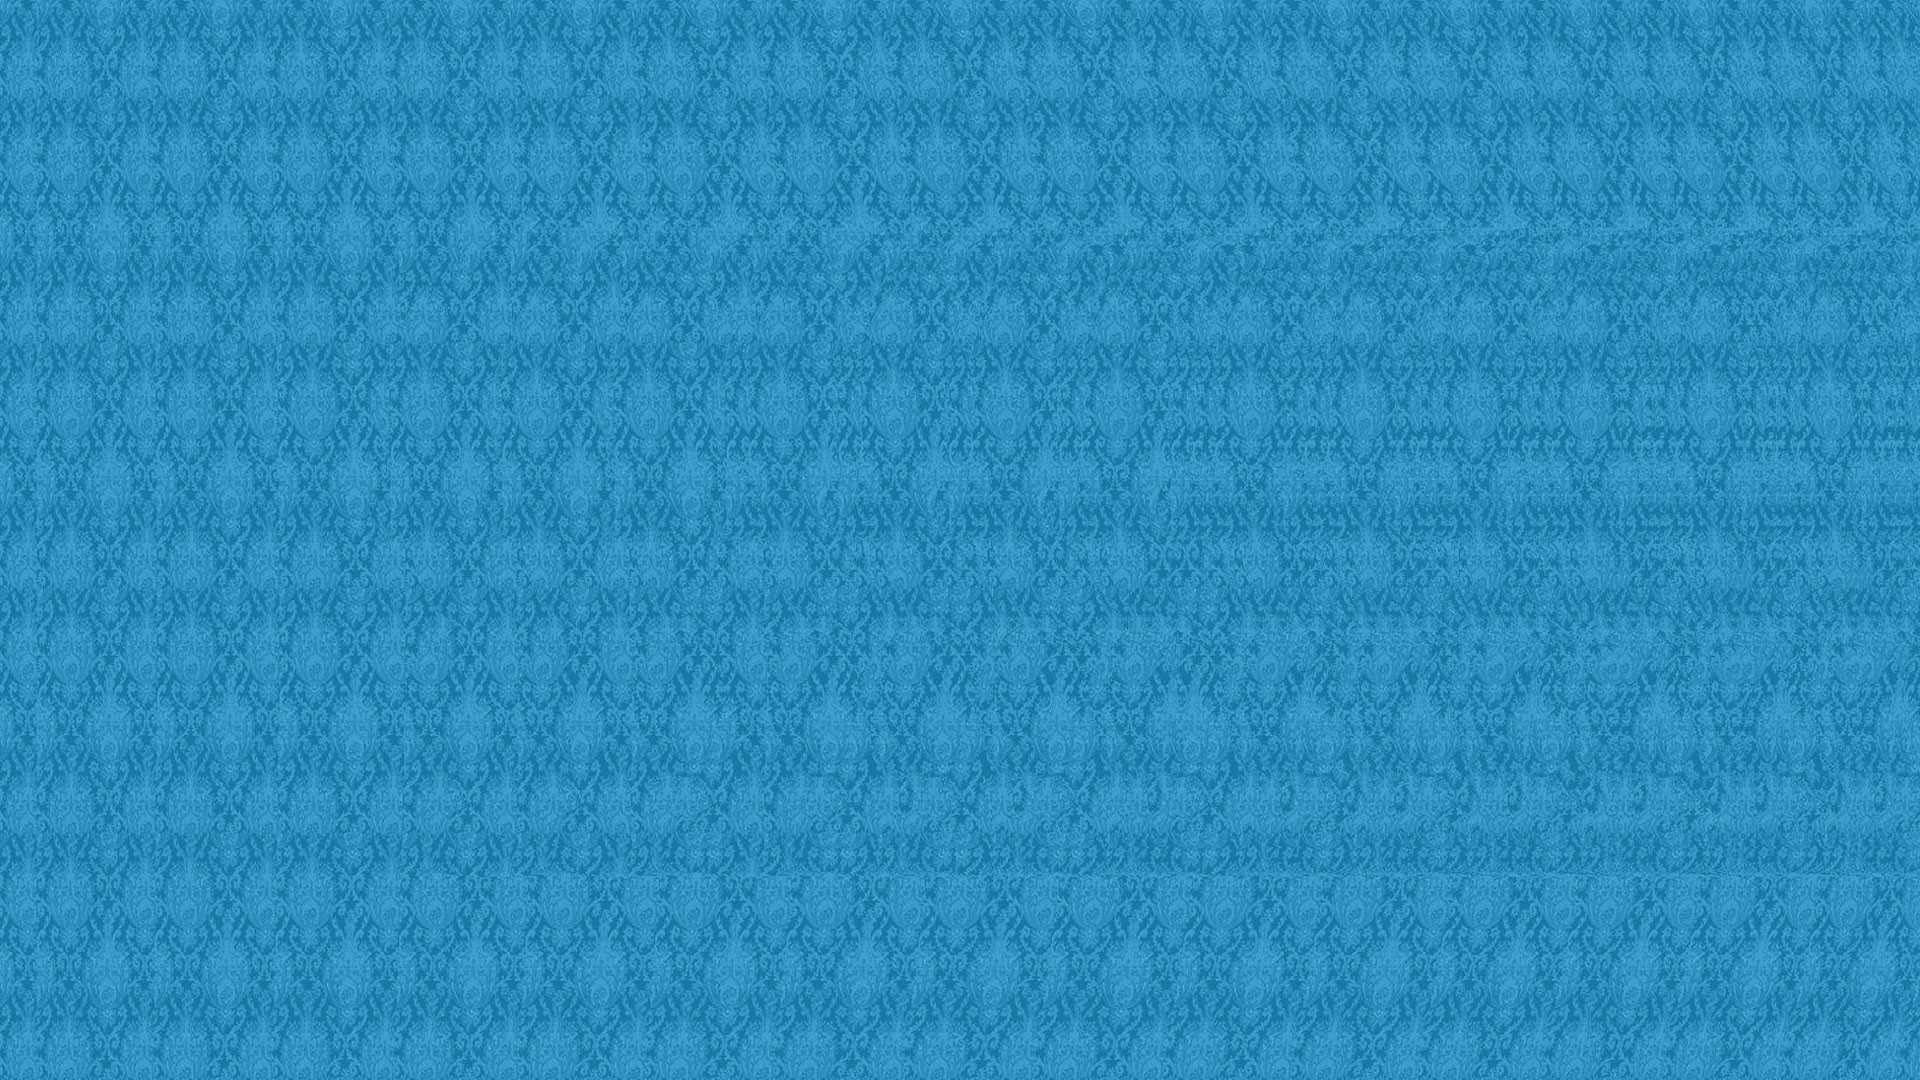 3d Wallpaper S8 Stereogram Wallpapers 51 Images